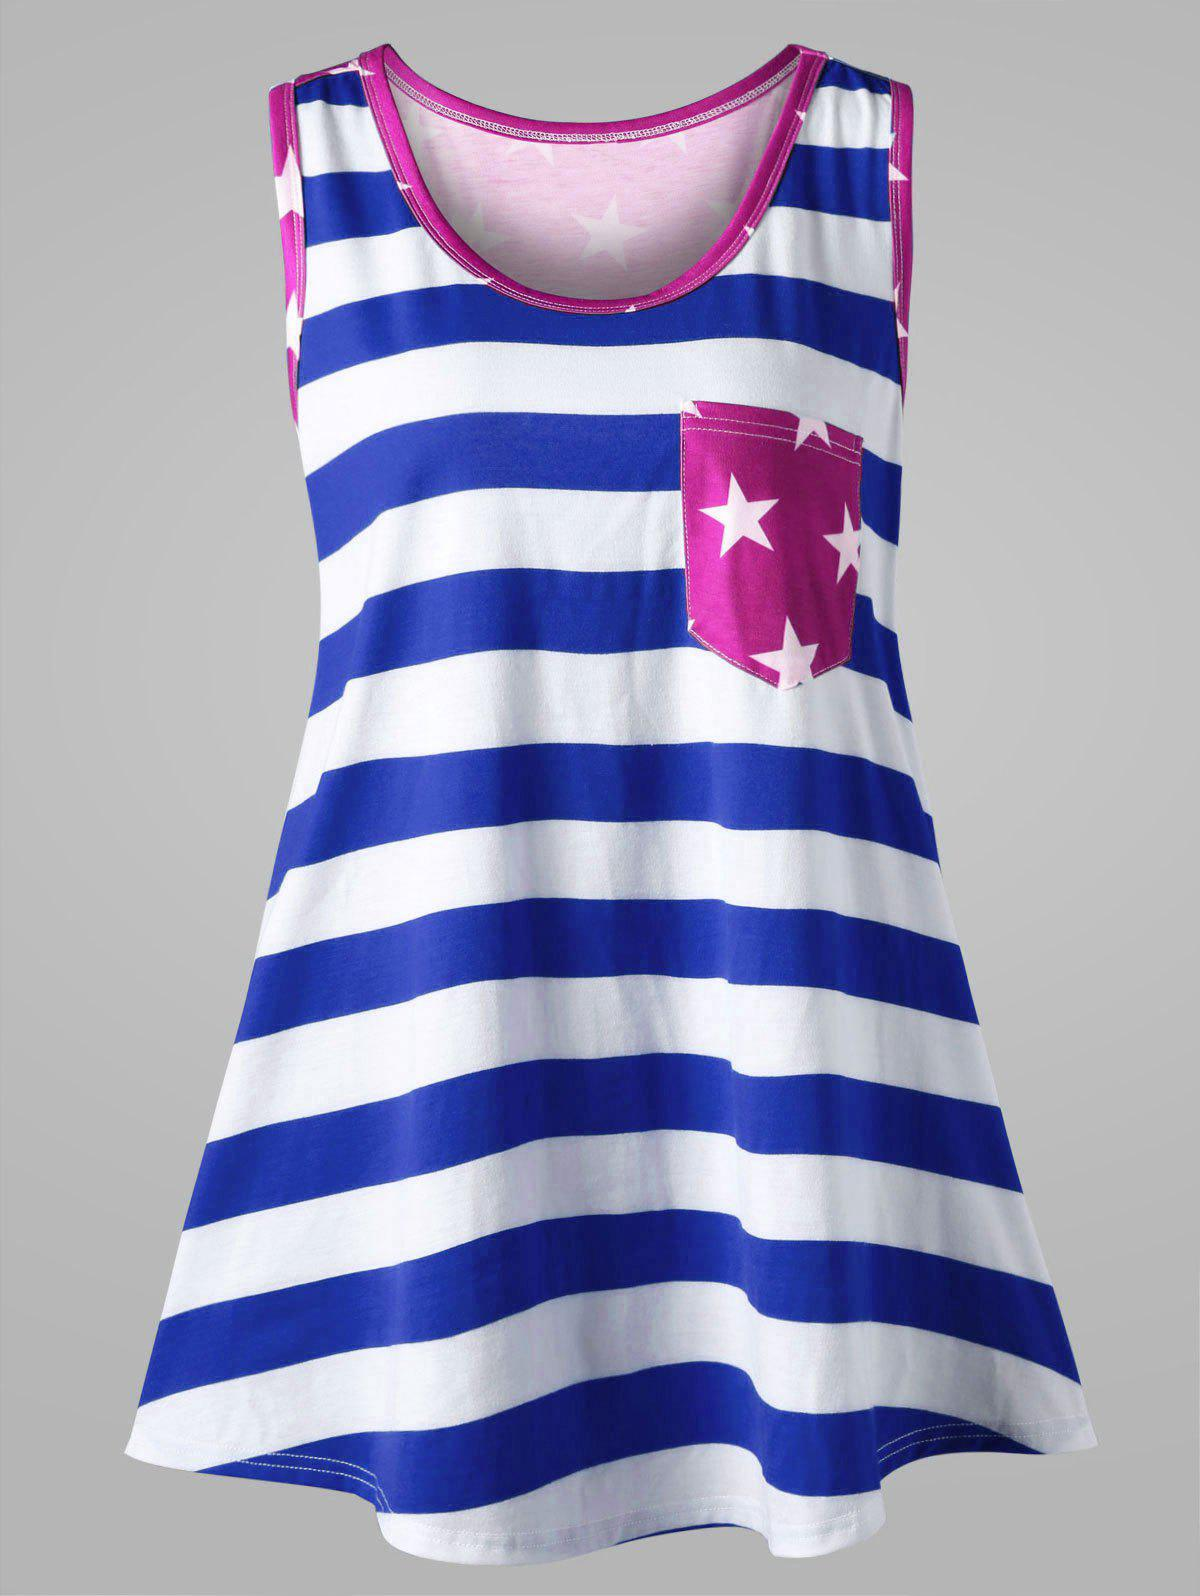 Plus Size American Flag Bowknot Embellished Tank Top side bowknot embellished plus size sweatshirts page 2